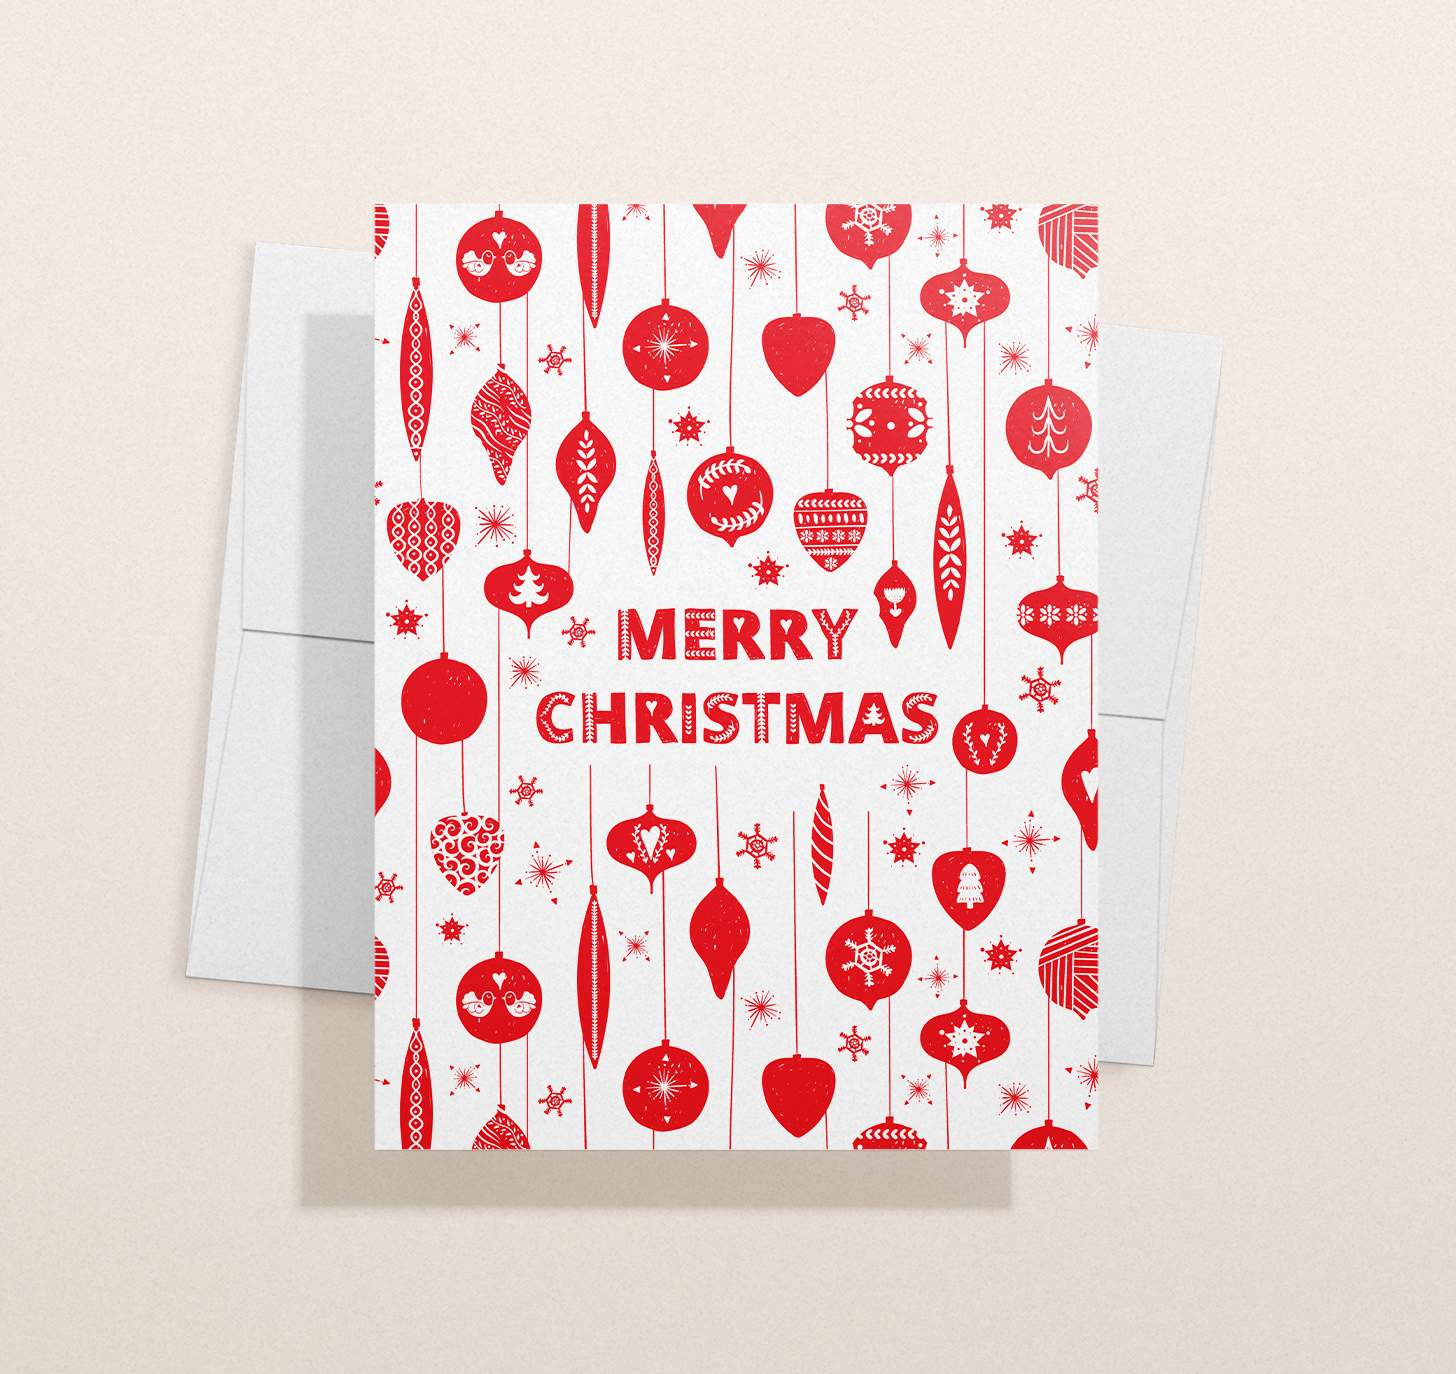 Red and white Merry Christmas with ornaments designs with envelope